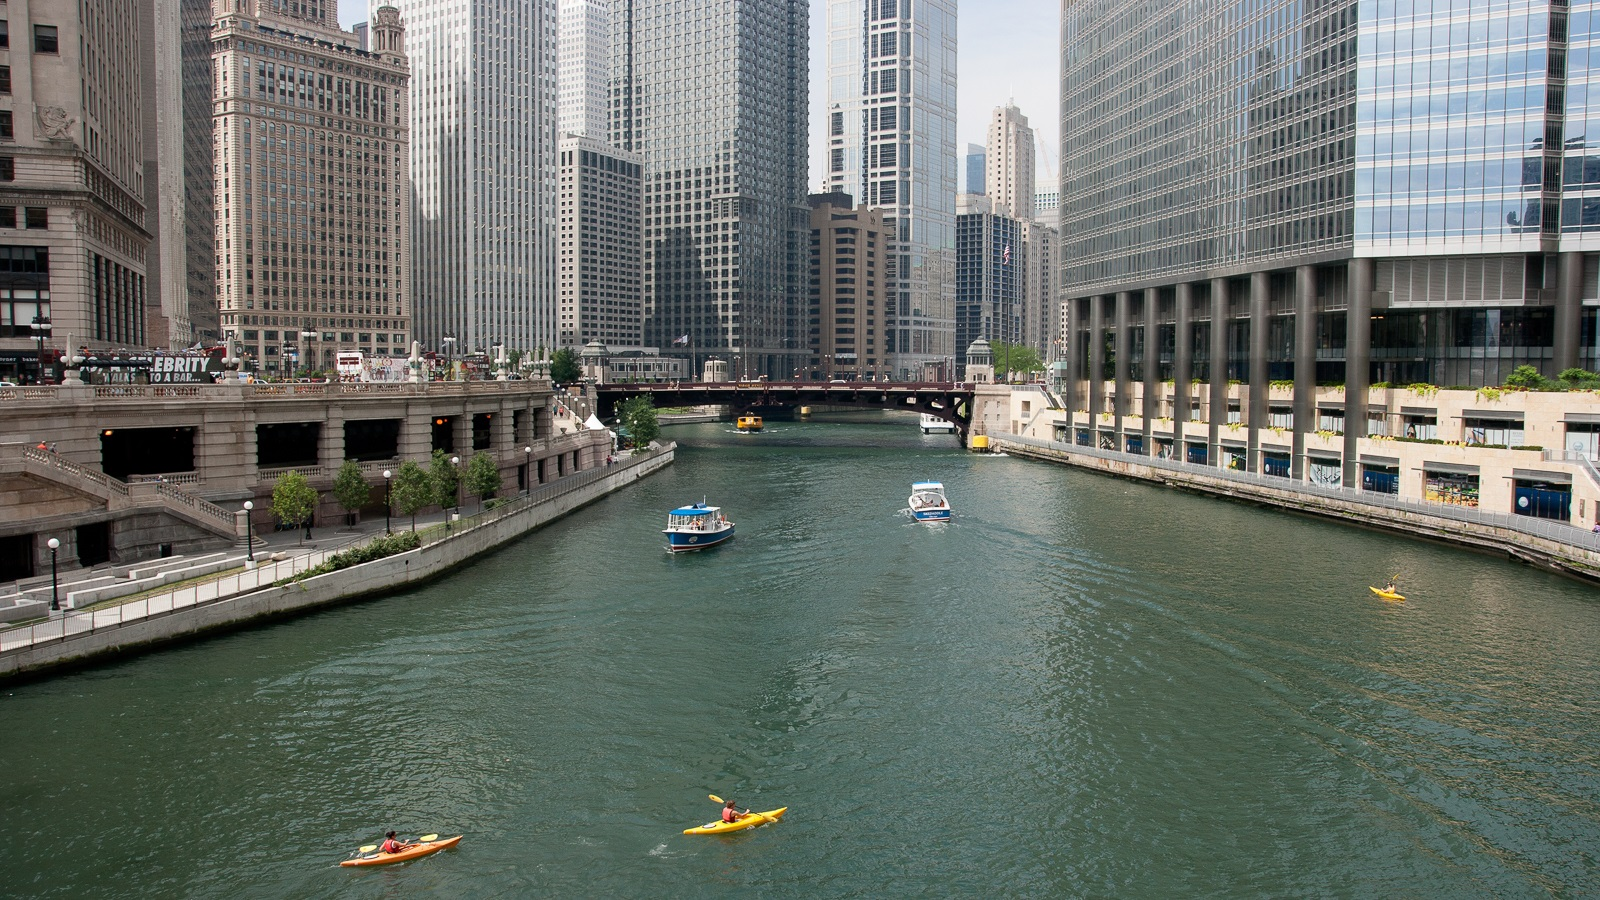 Boats on the Chicago River. (Image by Argonne National Laboratory.)